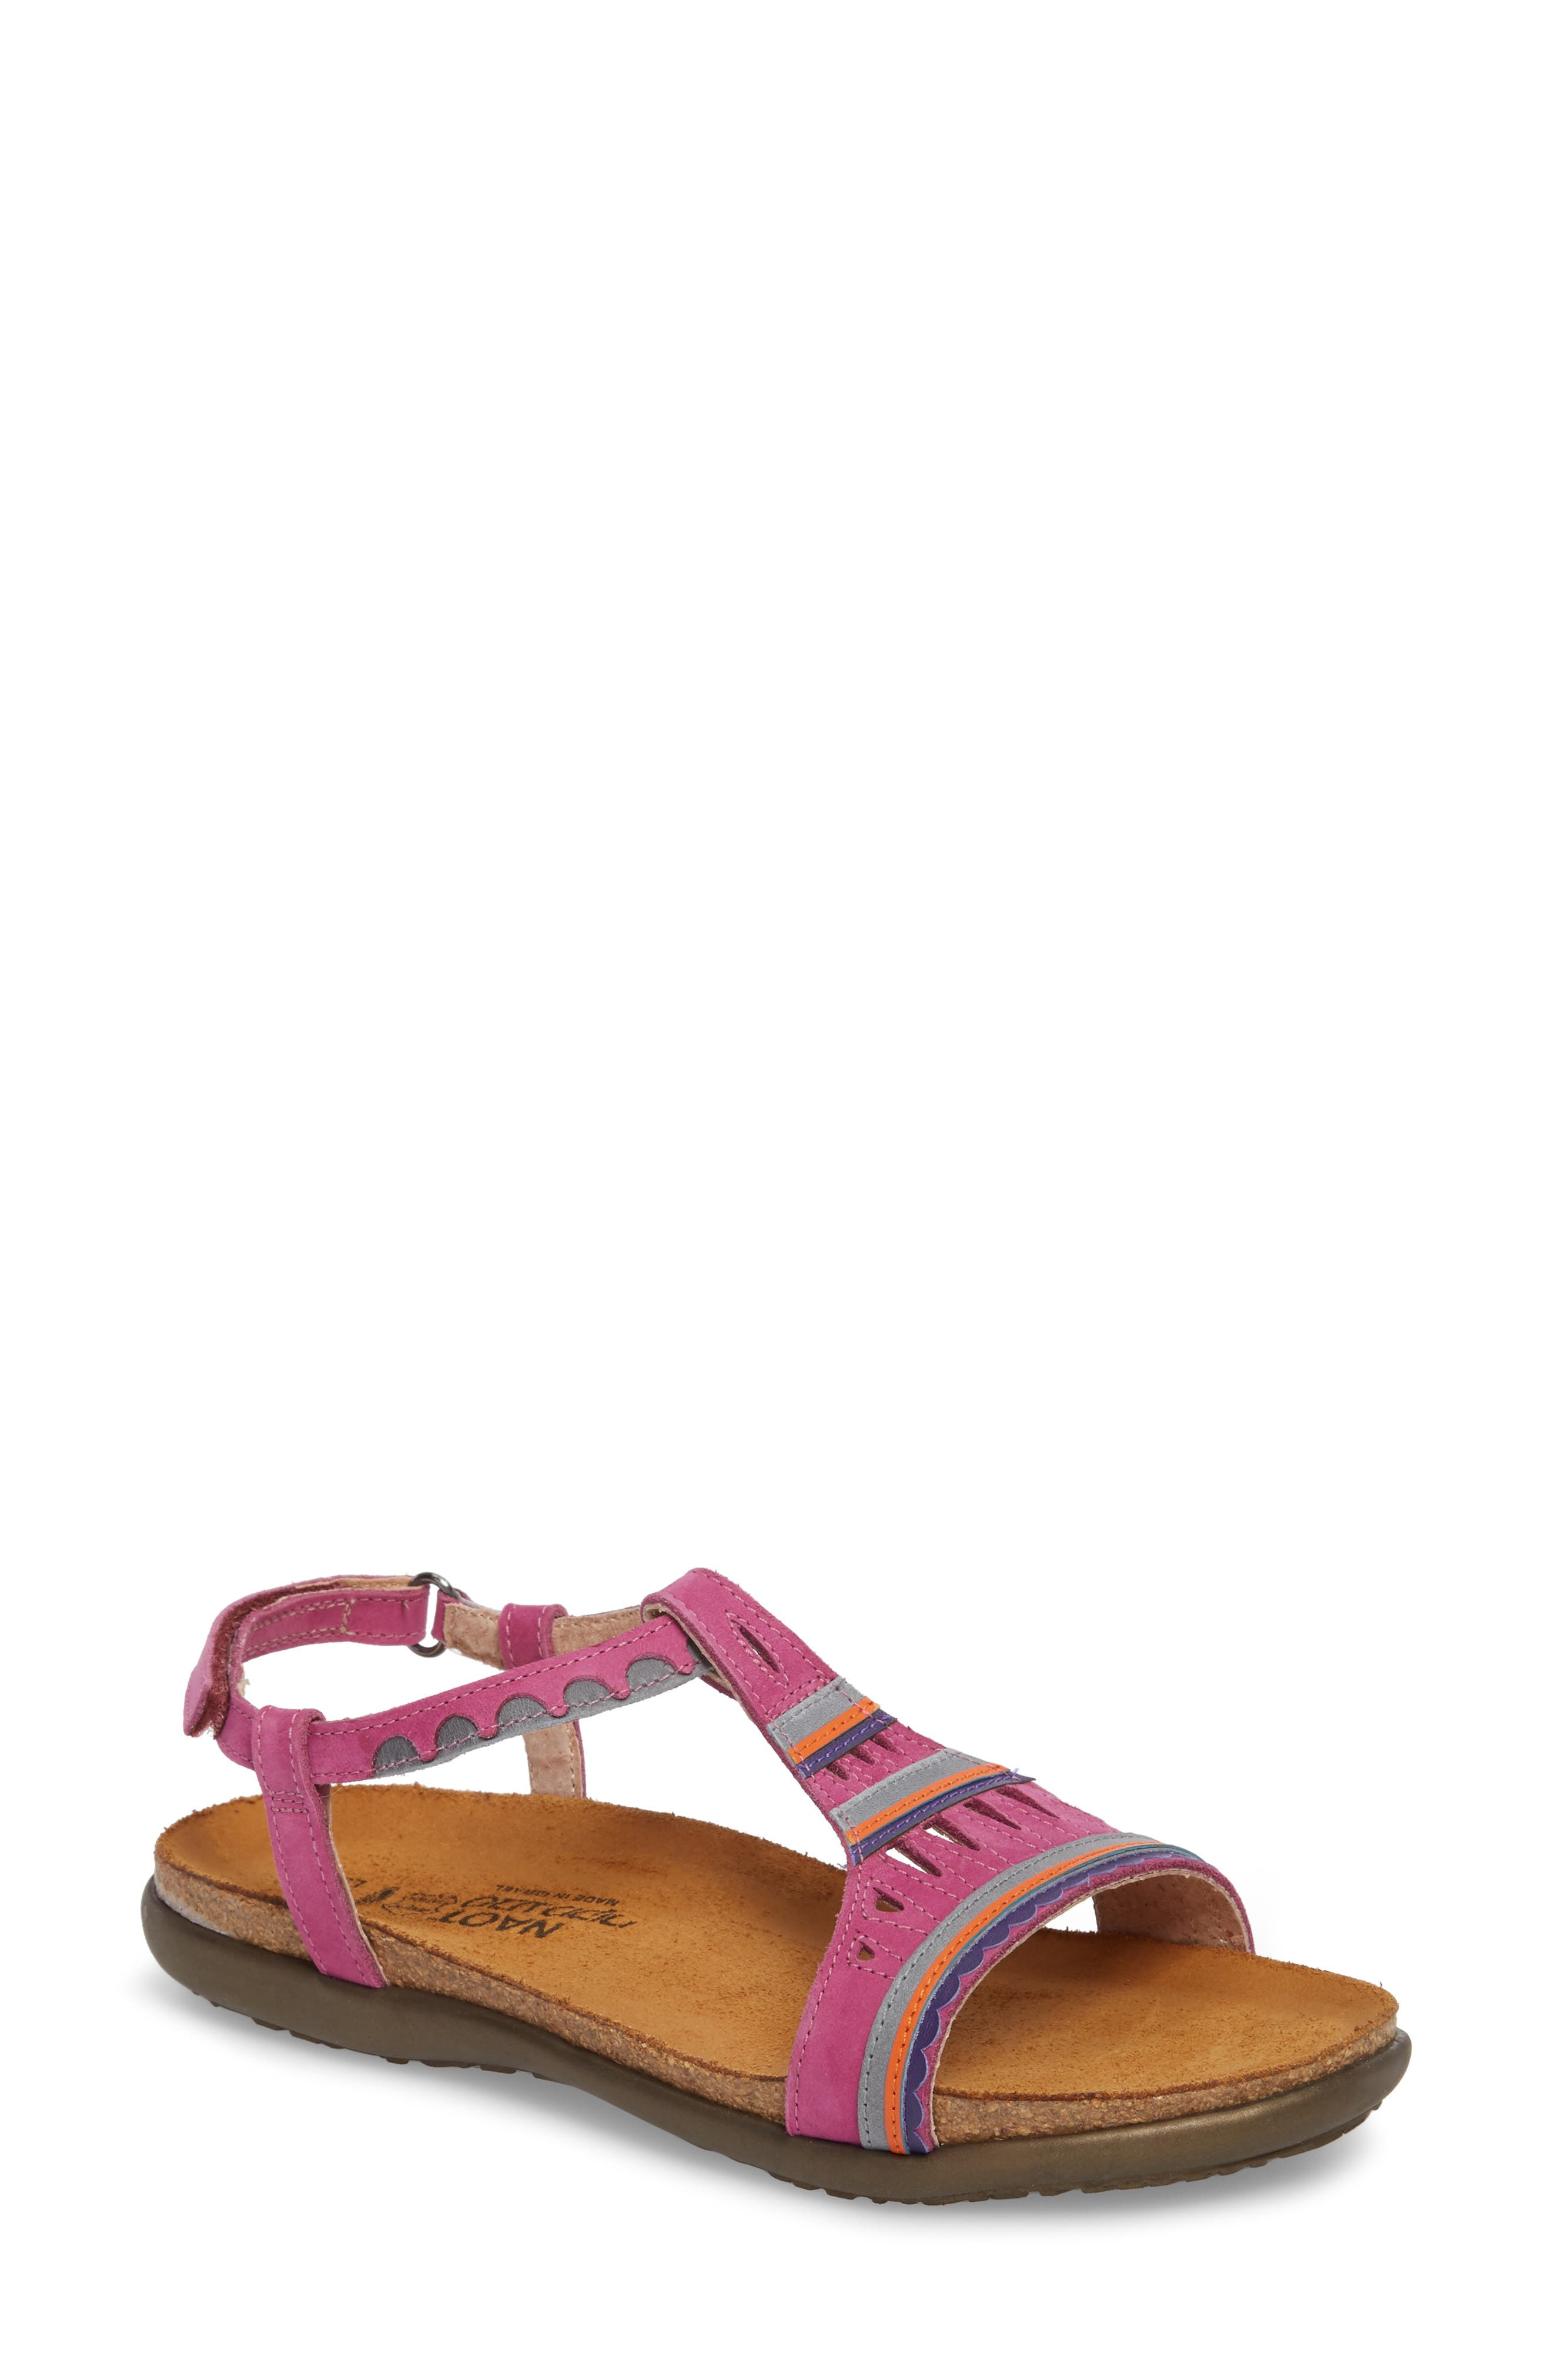 Alternate Image 1 Selected - Naot Odelia Perforated T-Strap Sandal (Women)